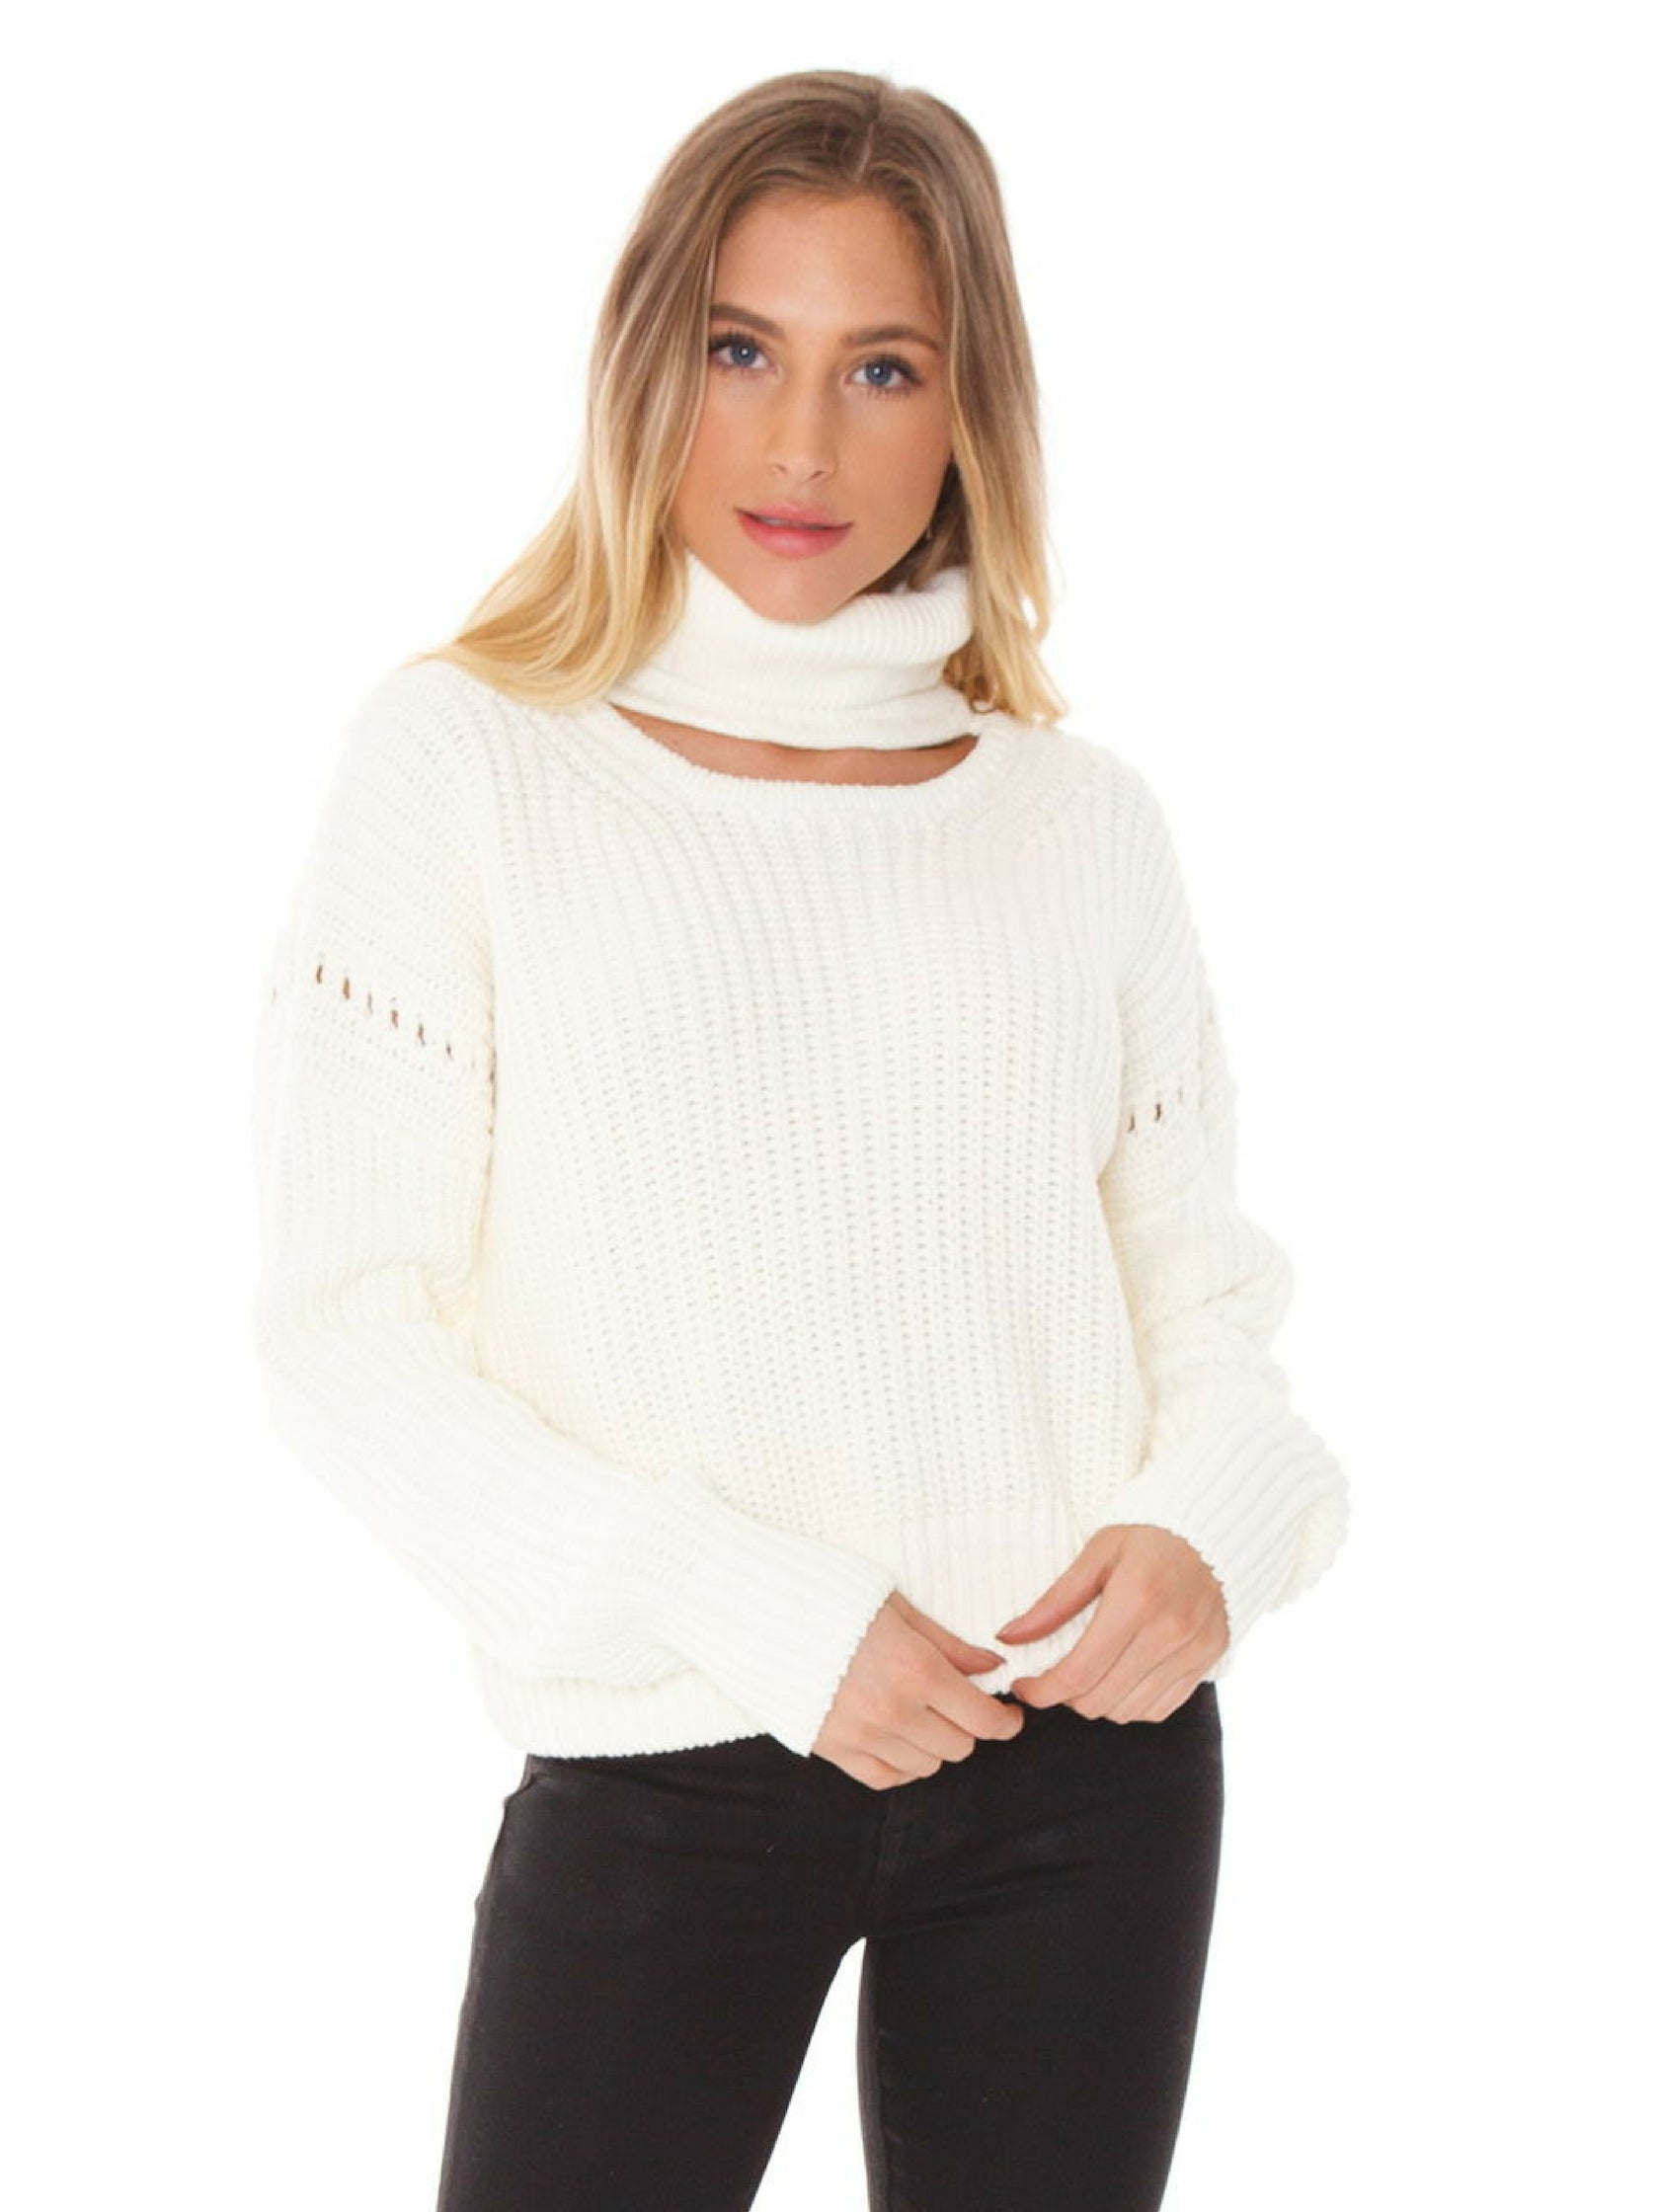 Girl outfit in a sweater rental from Bishop + Young called Fireside Cropped Sweater